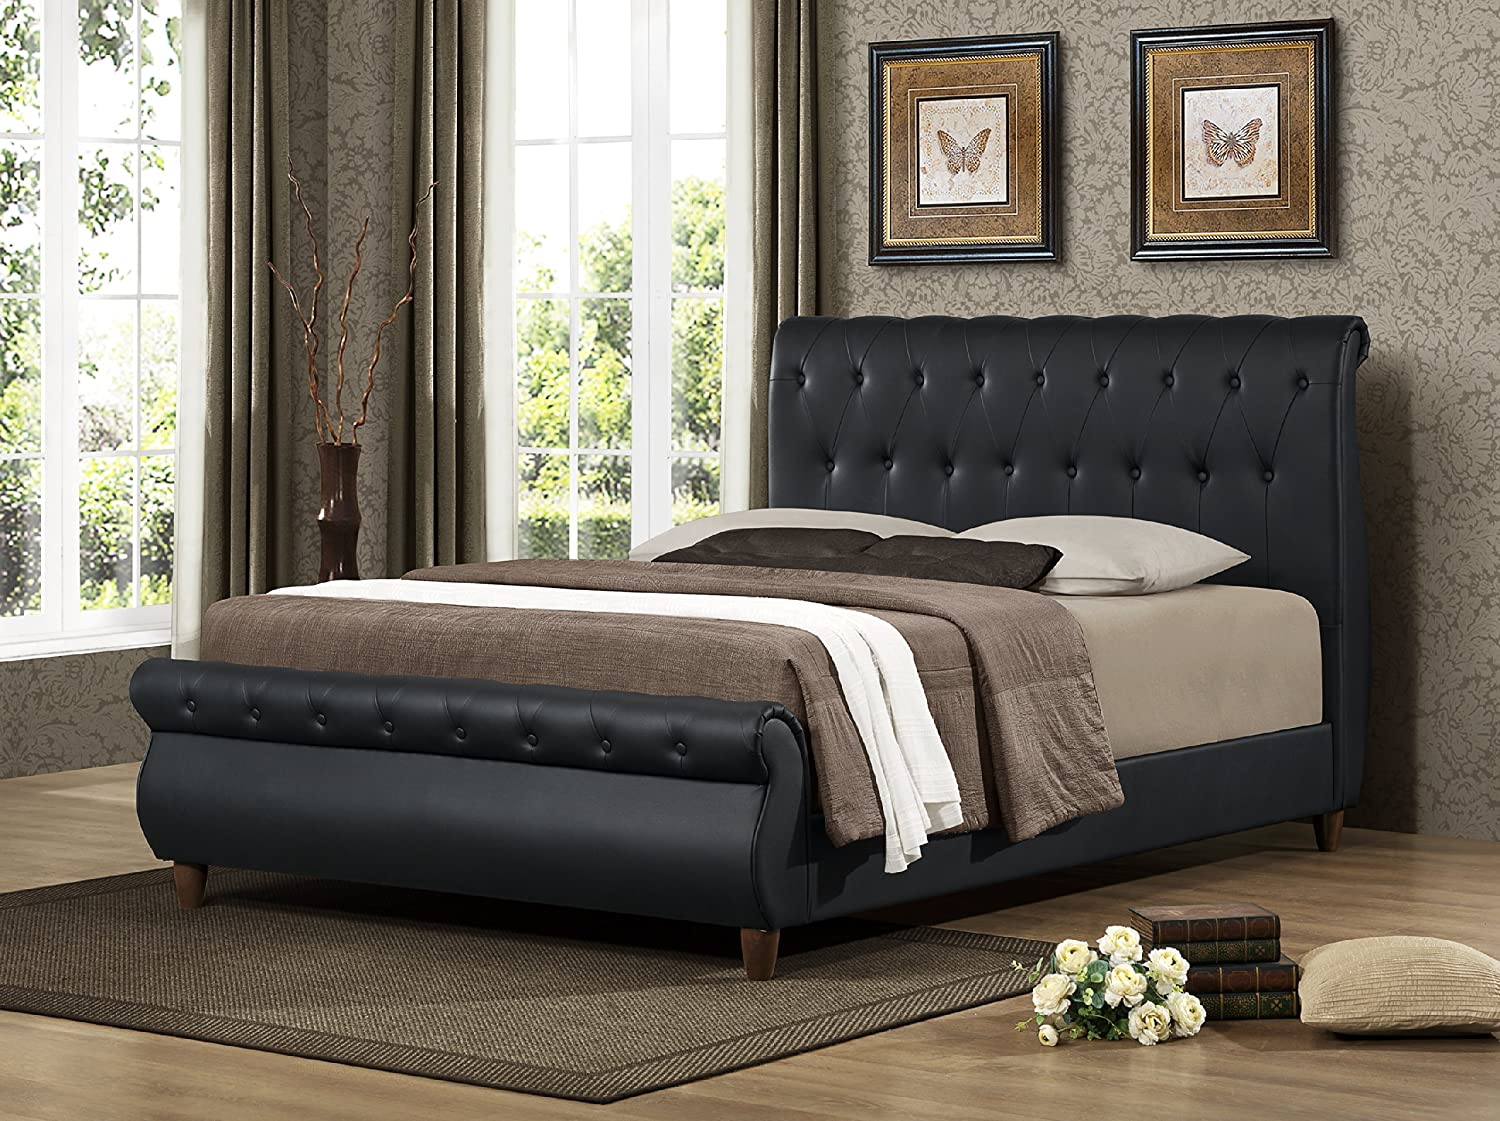 upholstered leather sleigh bed. Amazon.com: Furniture World Dali Upholstered Sleigh Bed With Button Tufted Accents And Wooden Legs, Queen, Black: Kitchen \u0026 Dining Leather T